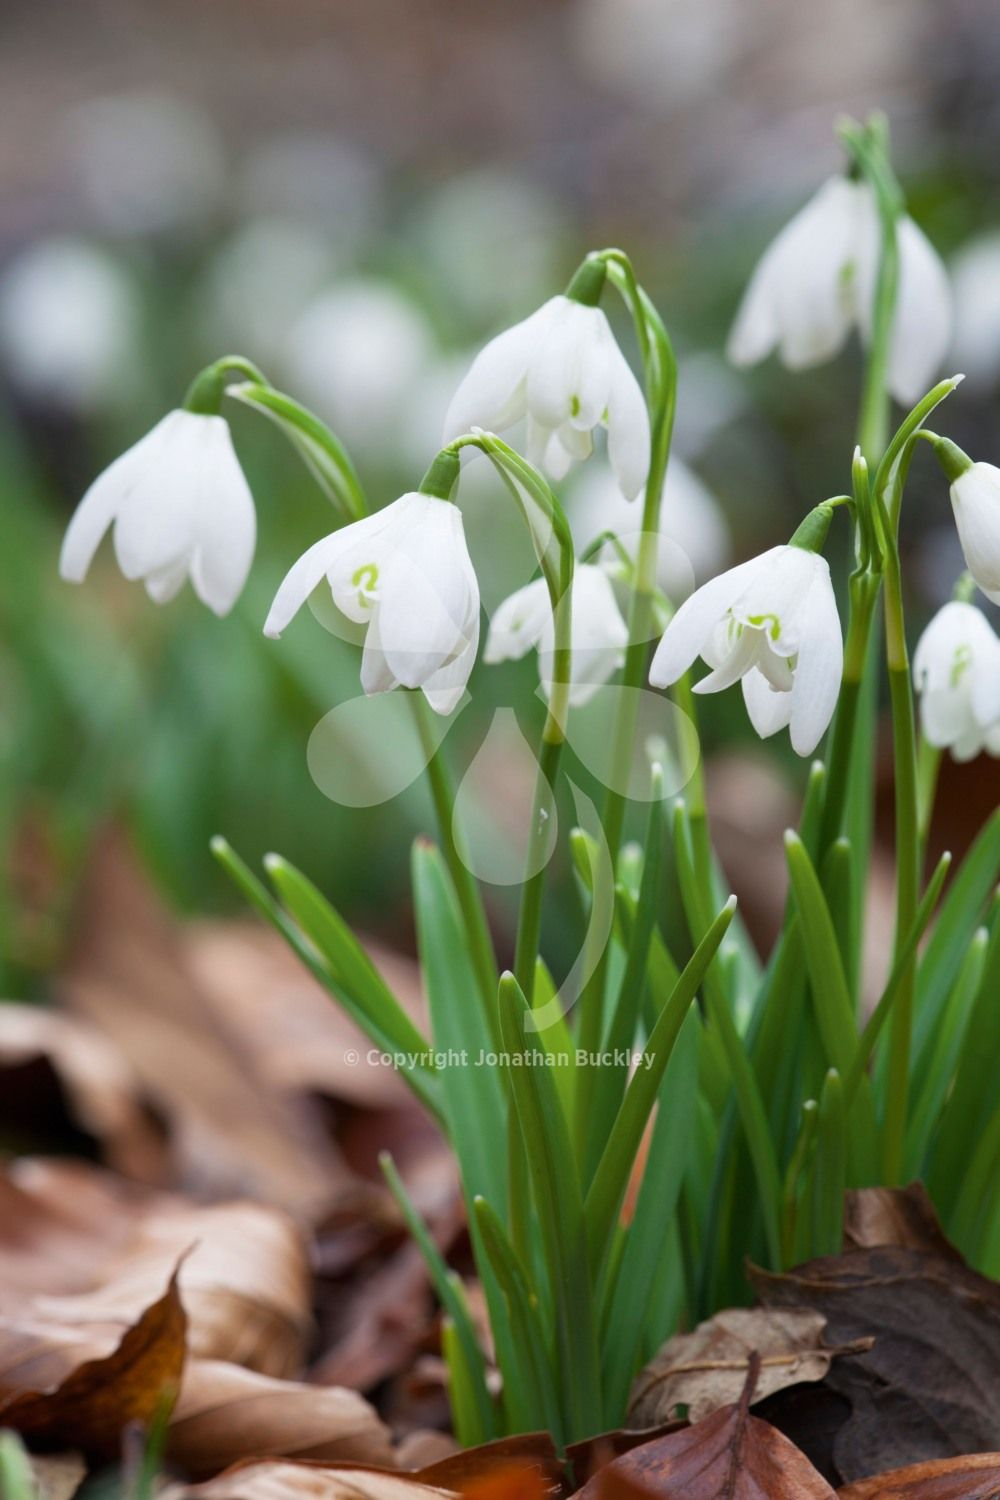 Galanthus Flore Pleno Is The Classic Wild Species Snowdrop With Flowers Like The Underskirts Of A Ballerina S Tutu Wonderful Scent Kvetiny